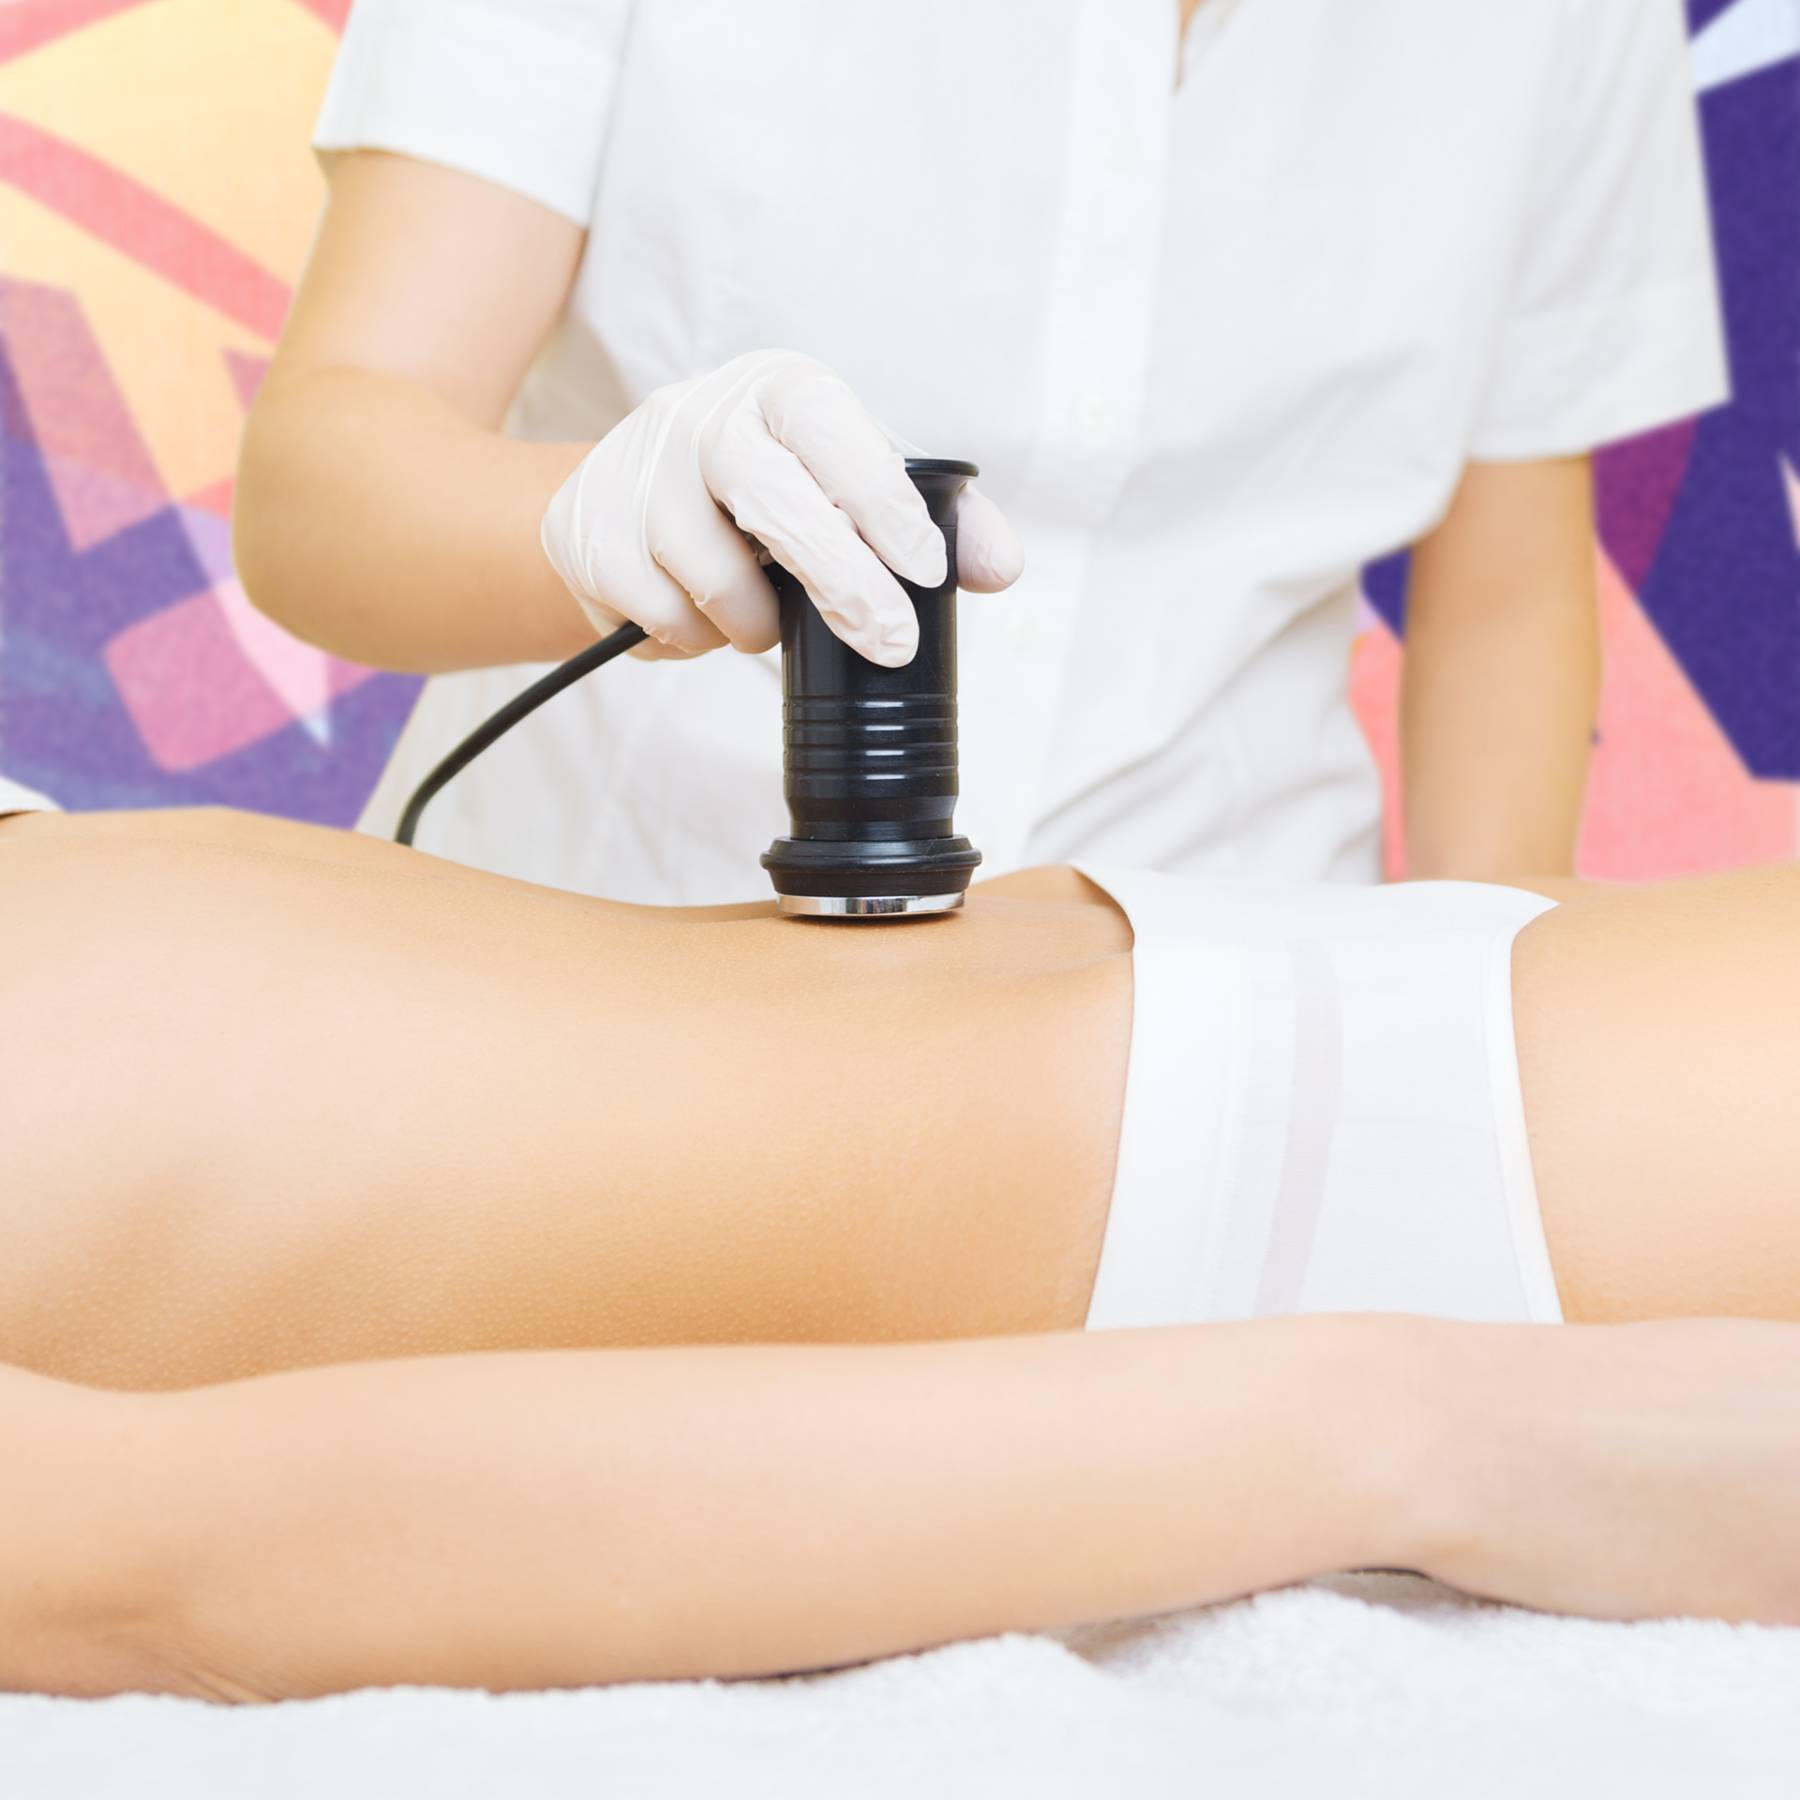 Body-Sculpting Treatments: What Are They And Do They Work